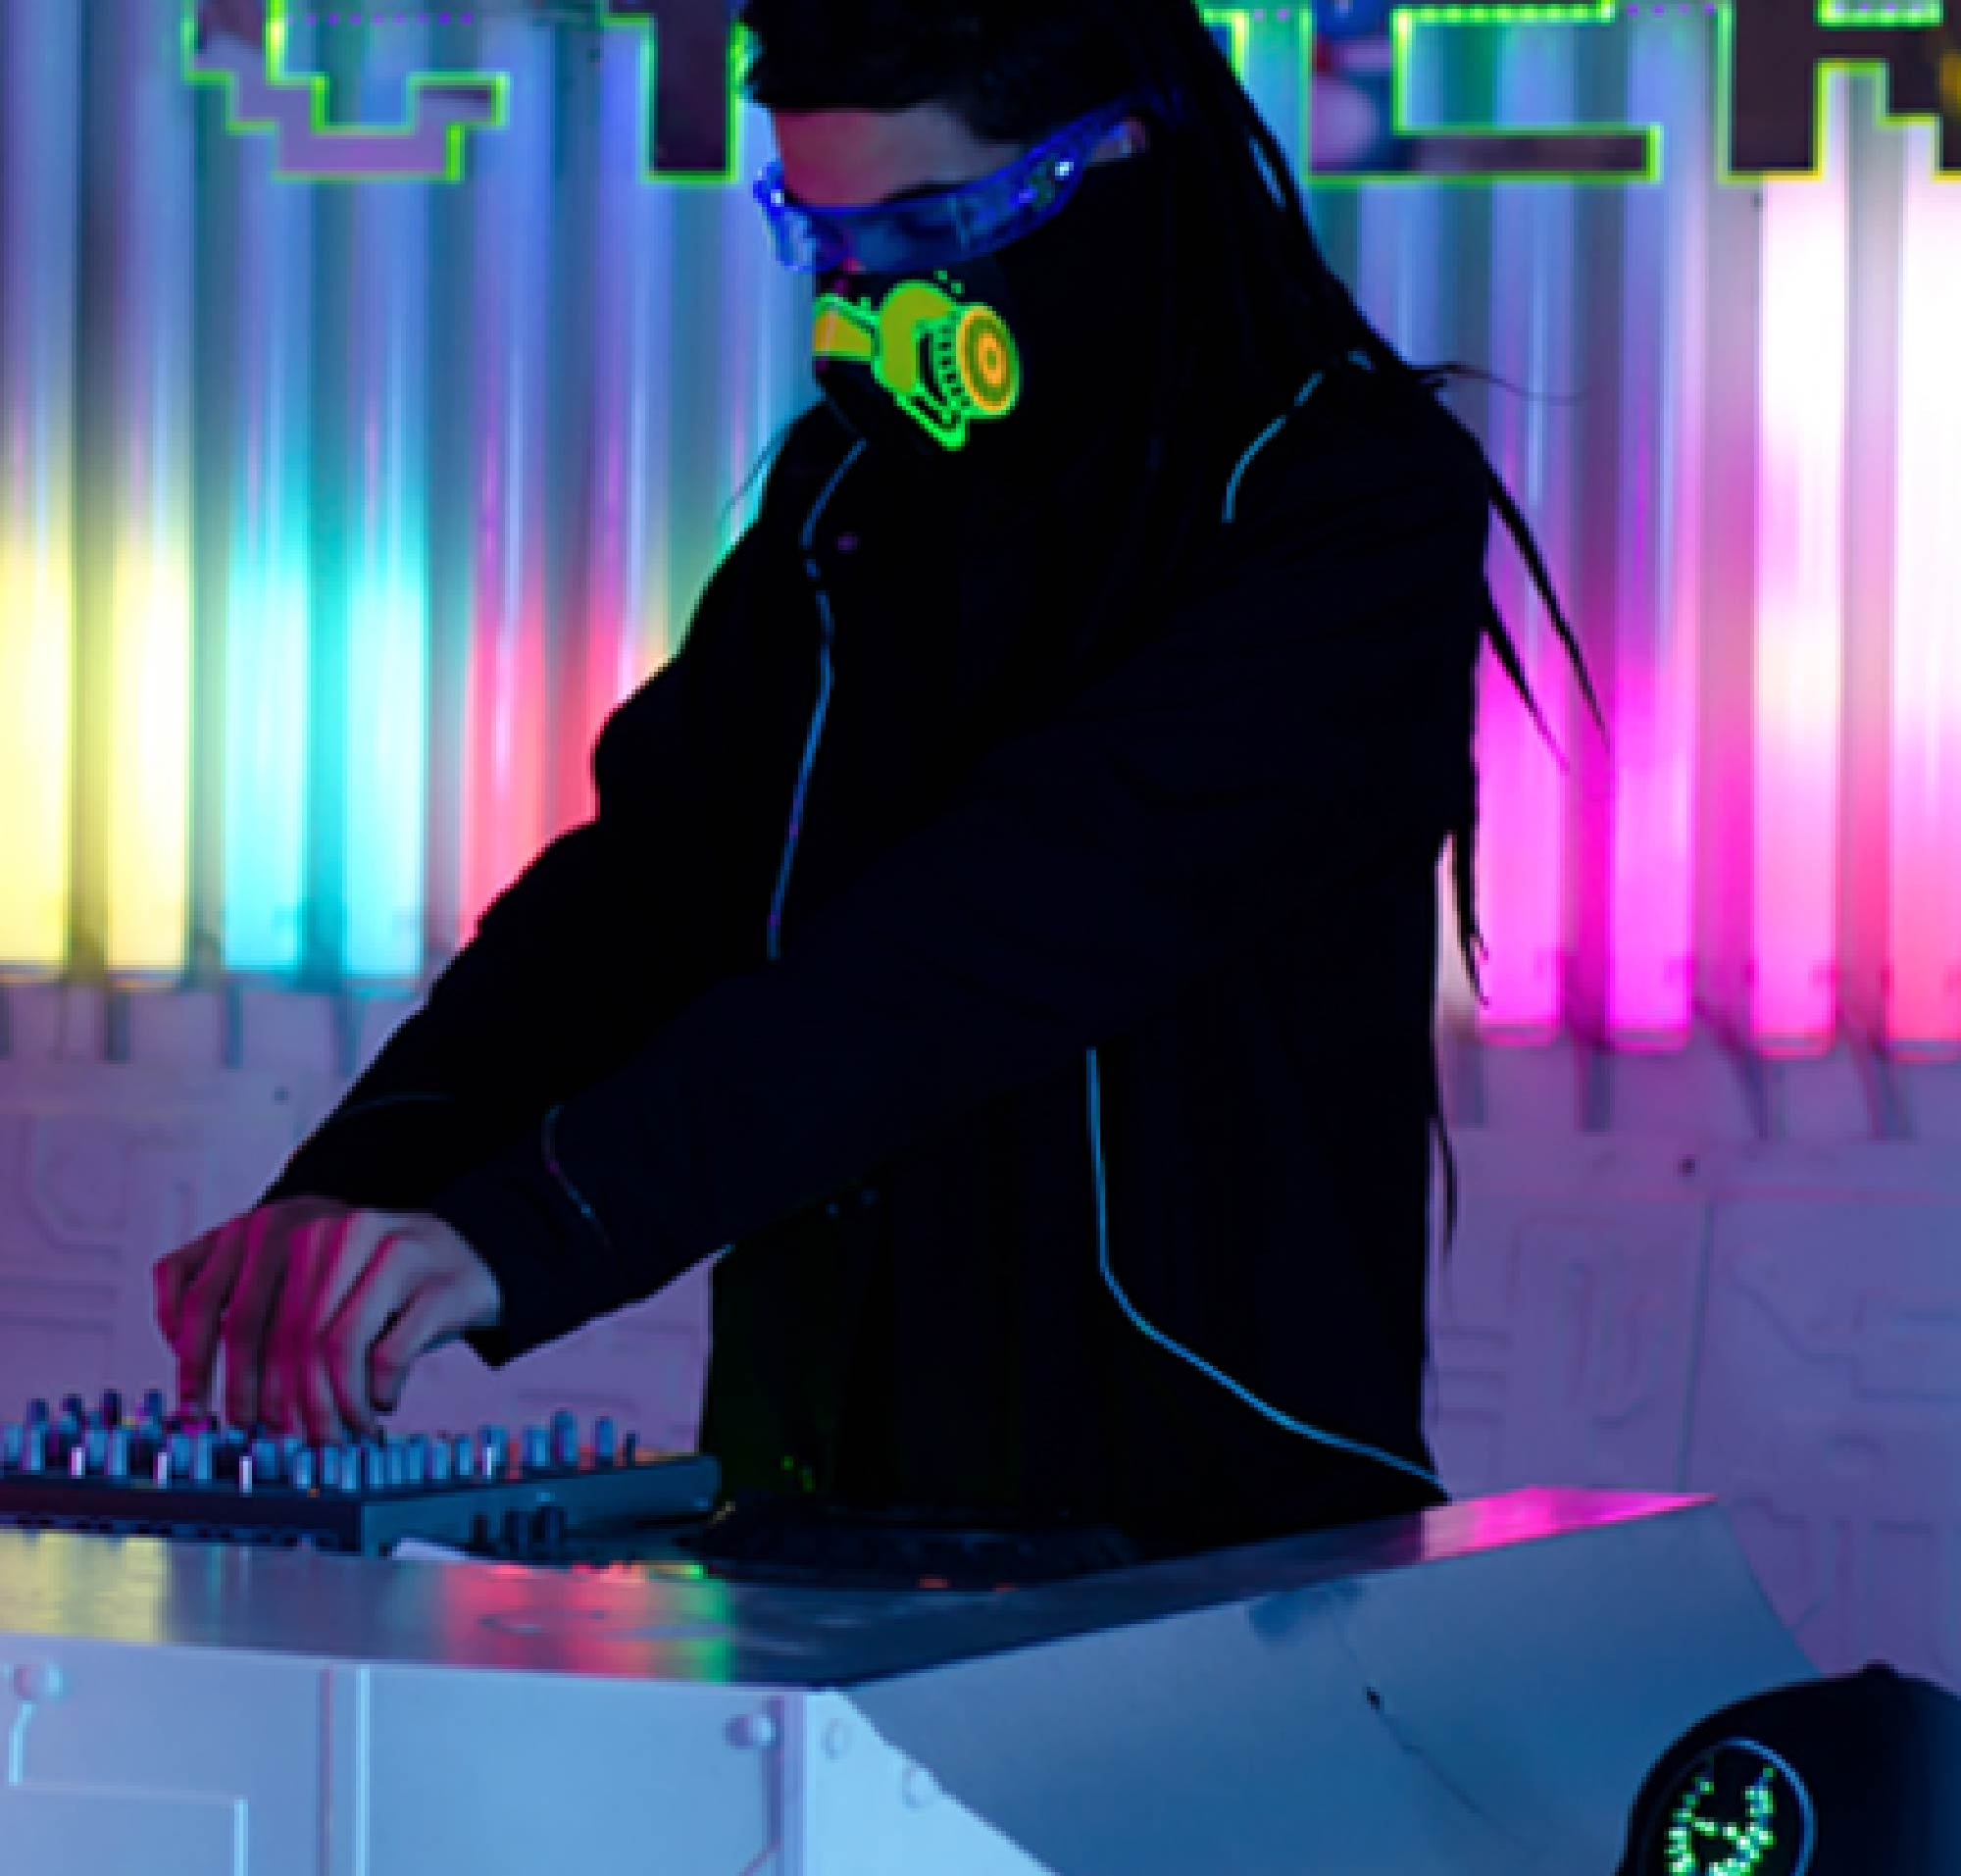 Music video production in London. Electro steampunk DJ spins some tunes.